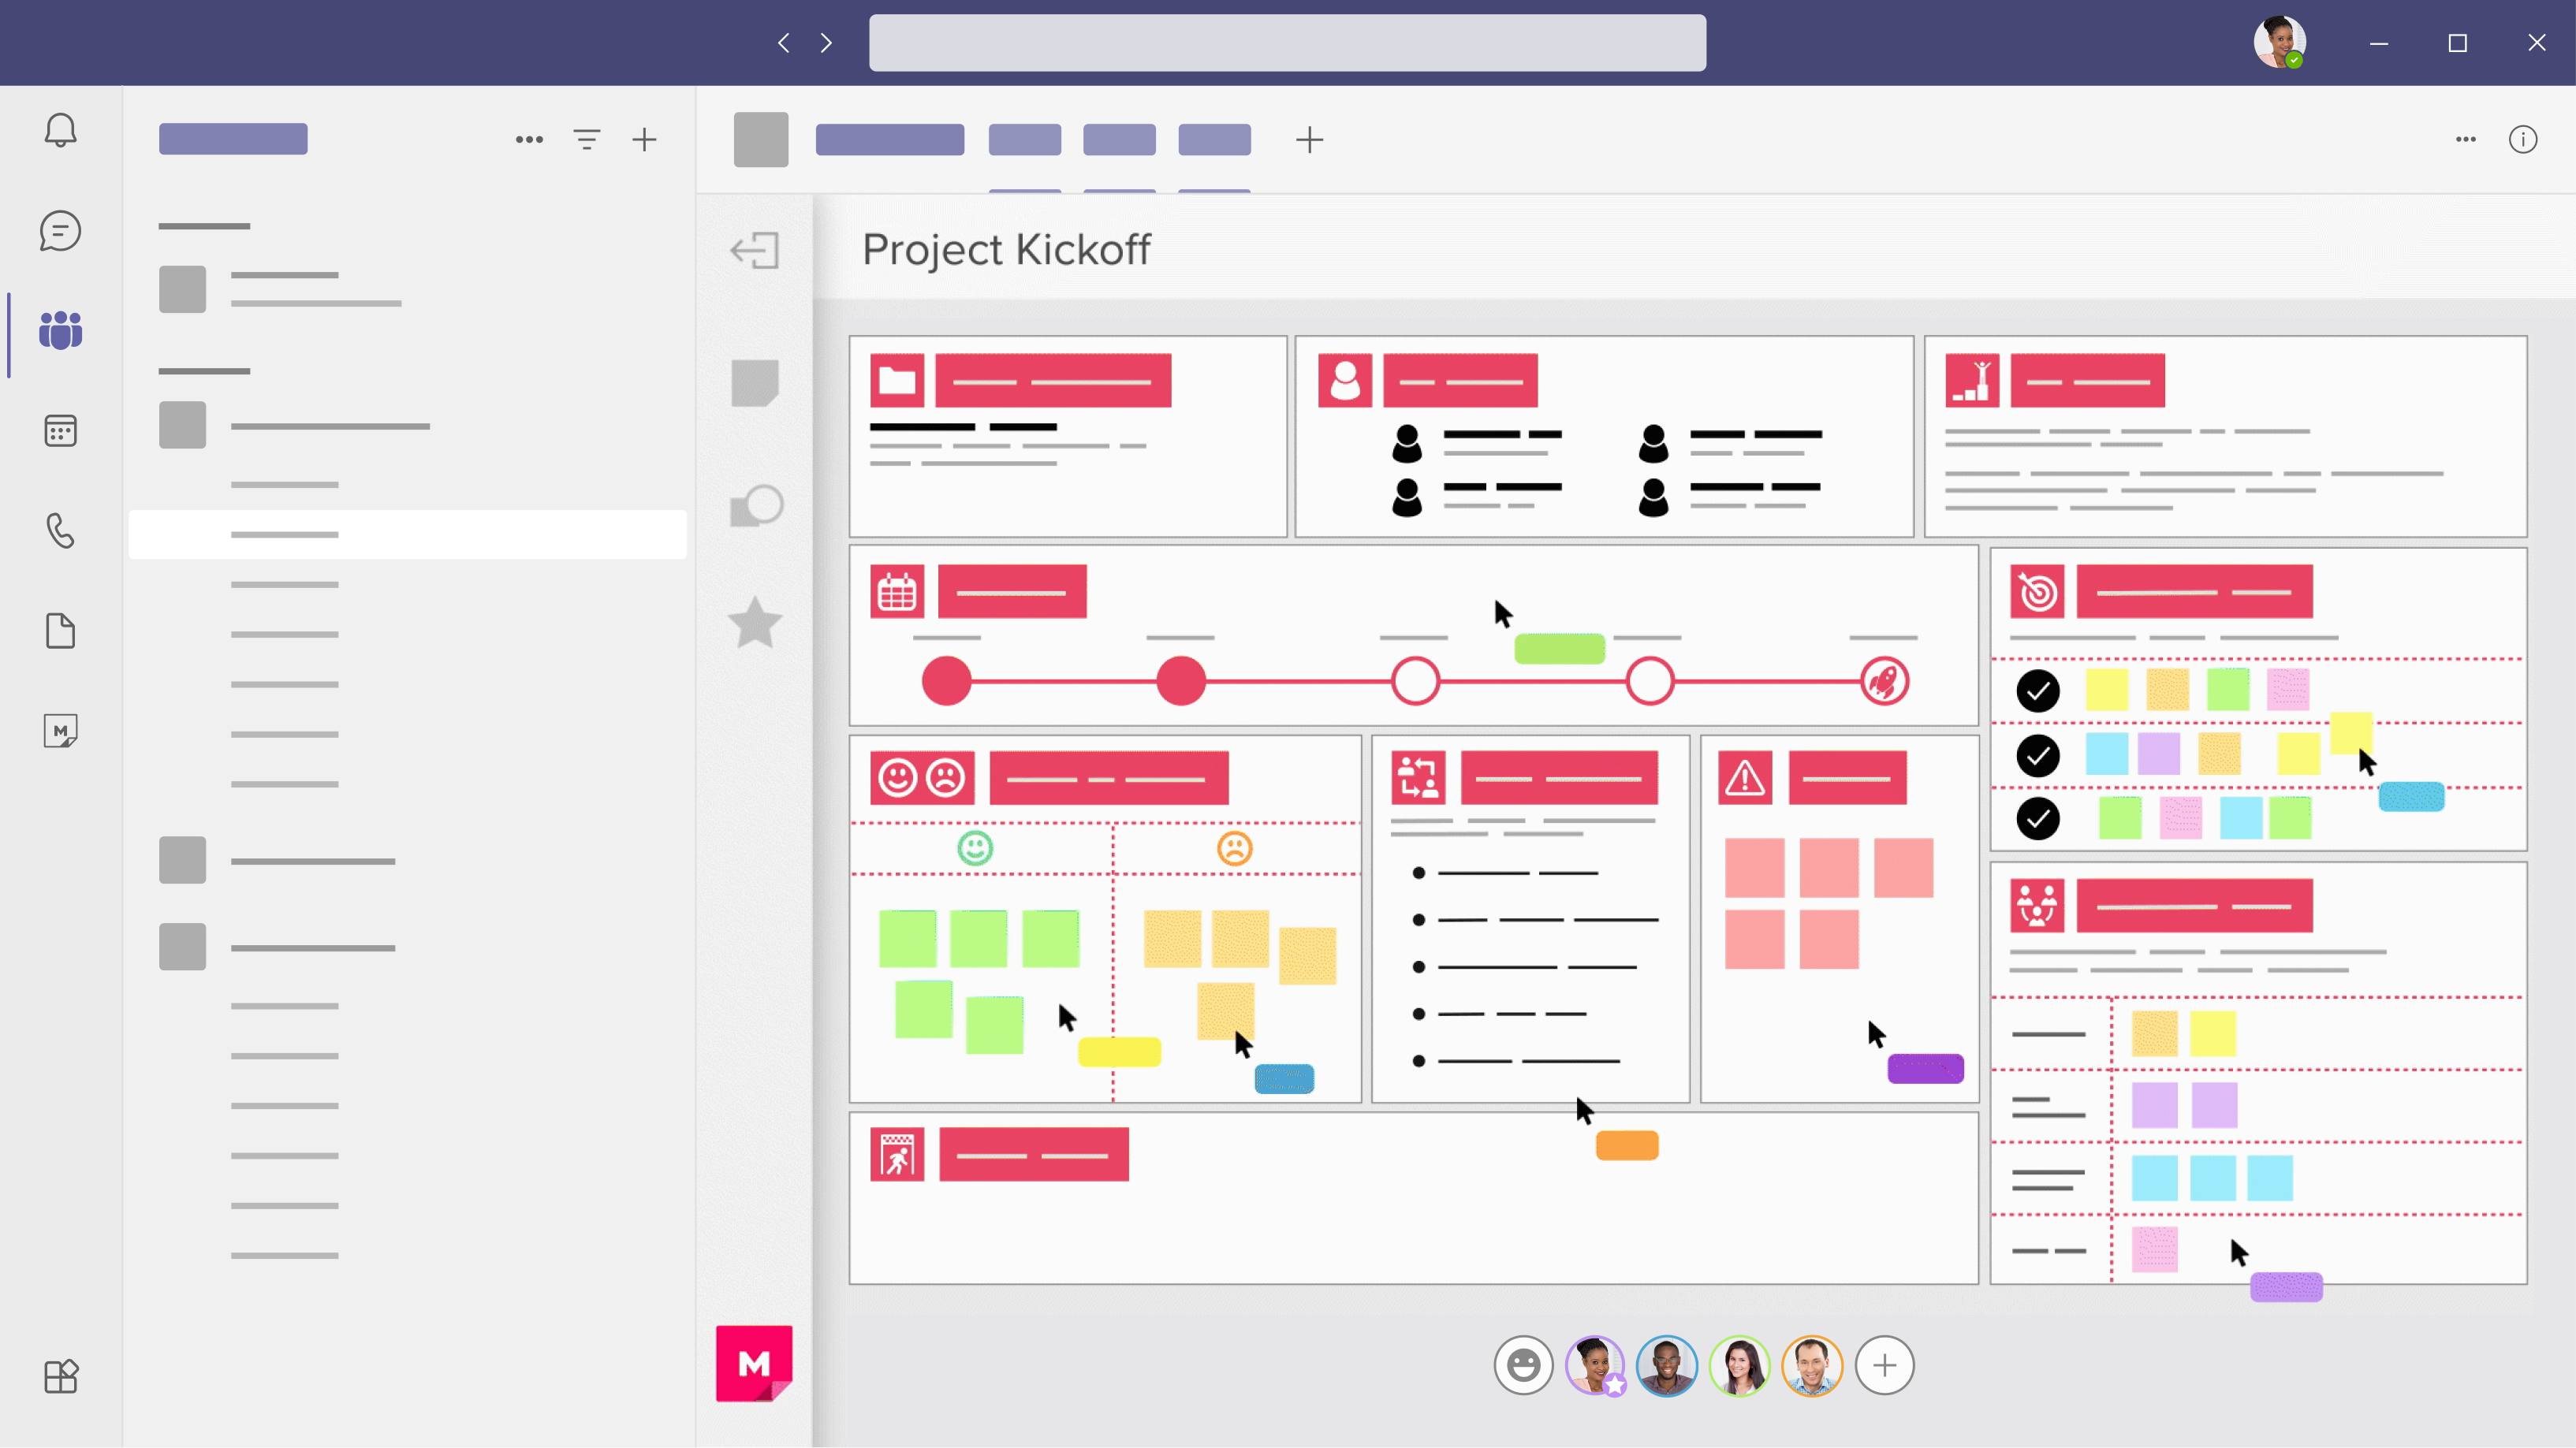 Abstracted image of a mural within Microsoft Teams